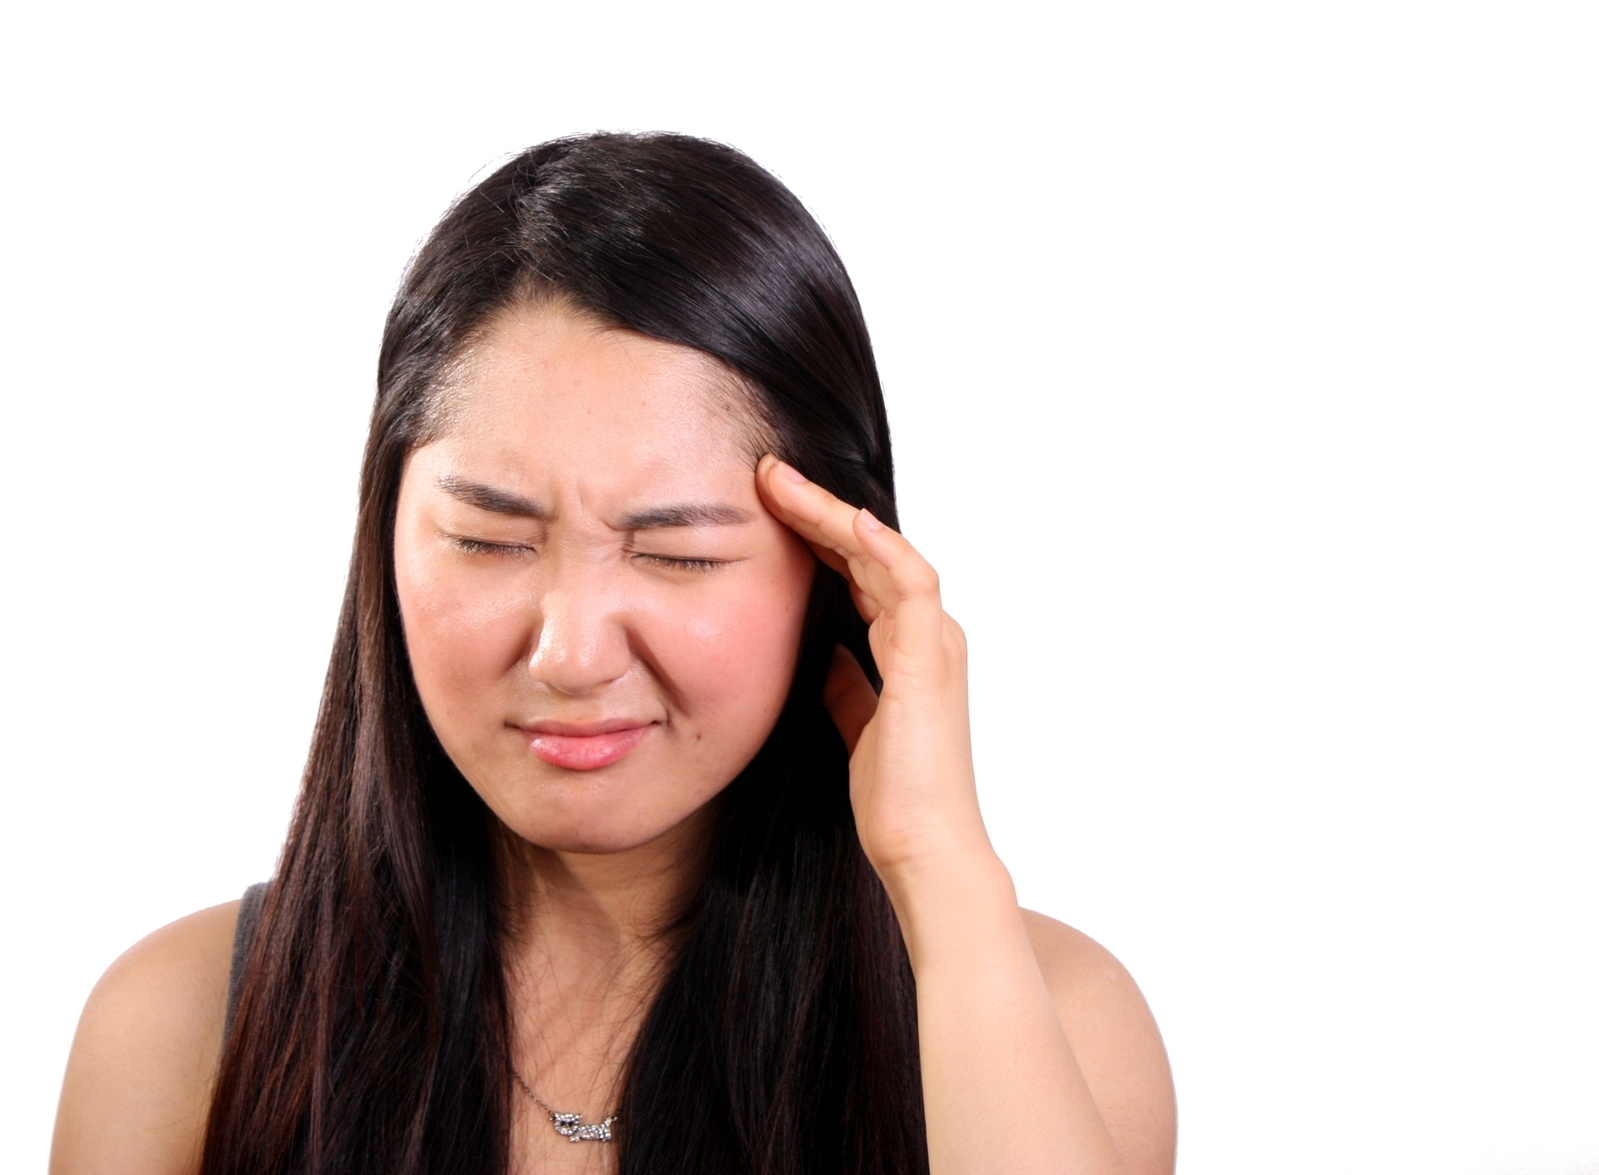 Severe Migraines Linked to Pregnancy Problems